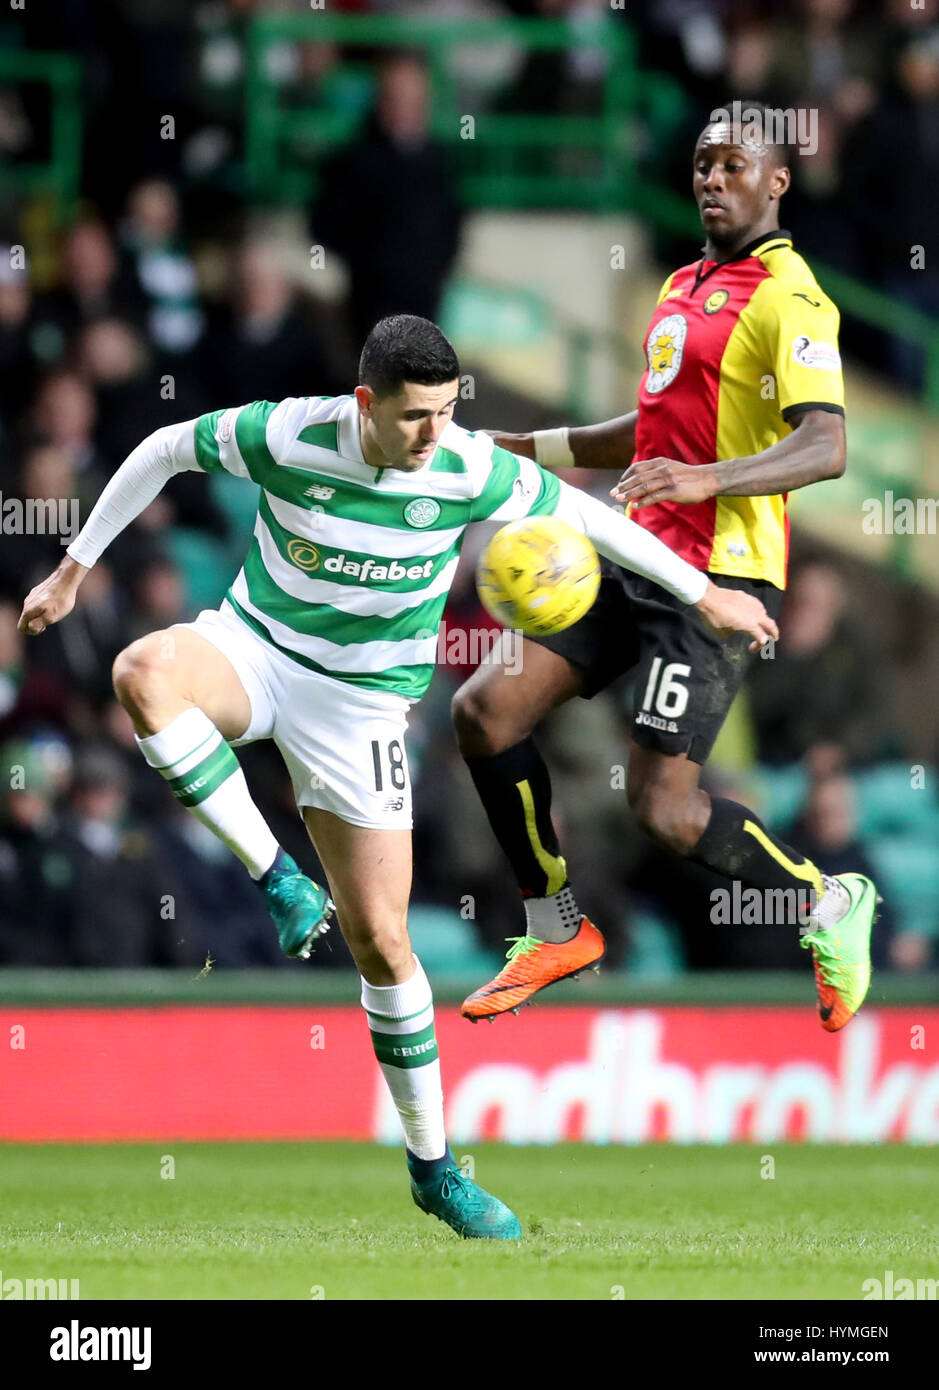 Celtic's Tom Rogic and Partick Thistle's Ade Azeez battle for the ball during the Ladbrokes Scottish Premiership - Stock Image